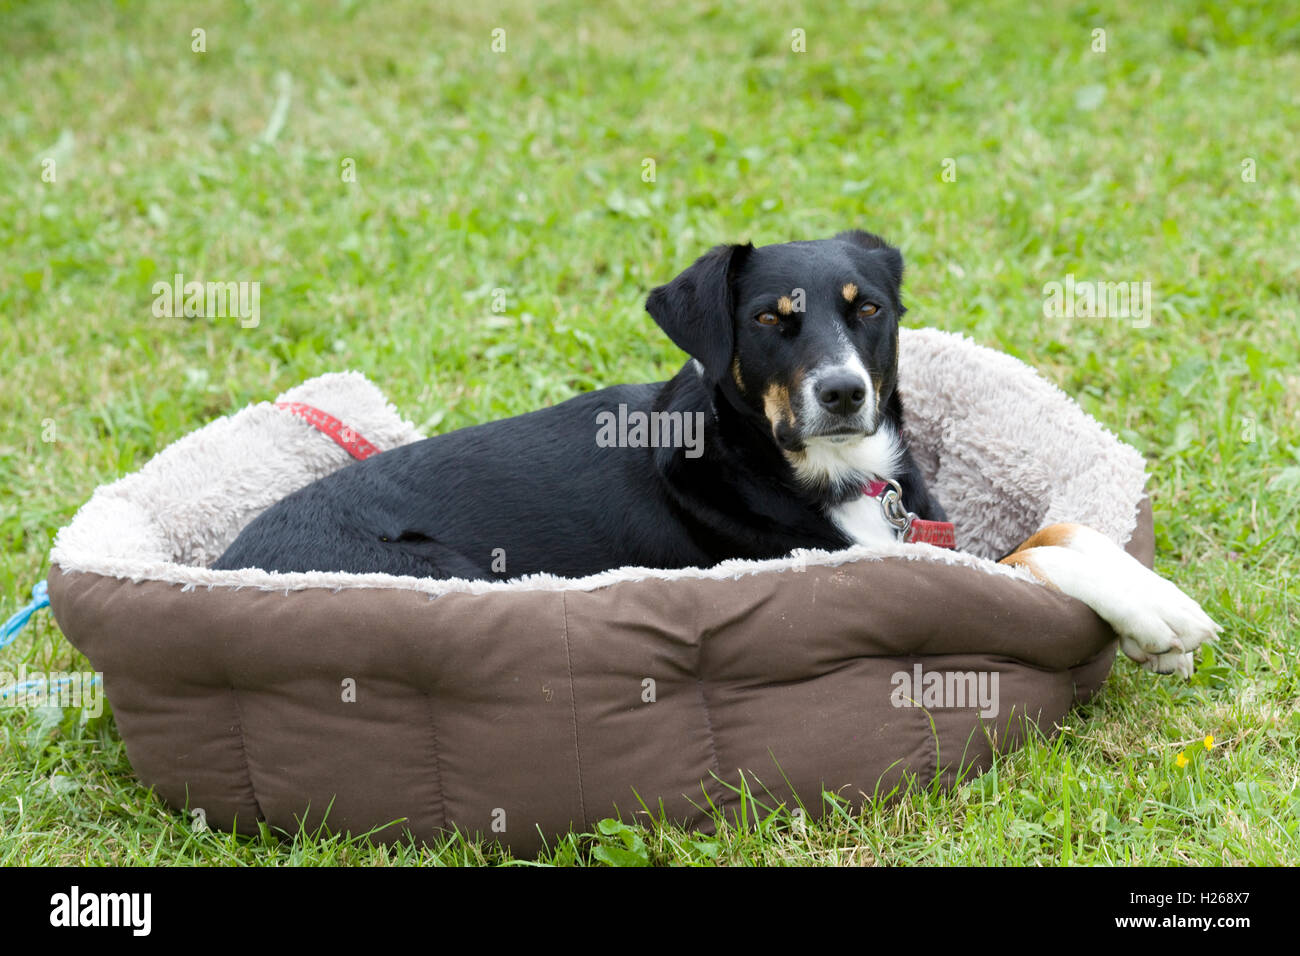 Dog relaxing outside in a dog bed - Stock Image